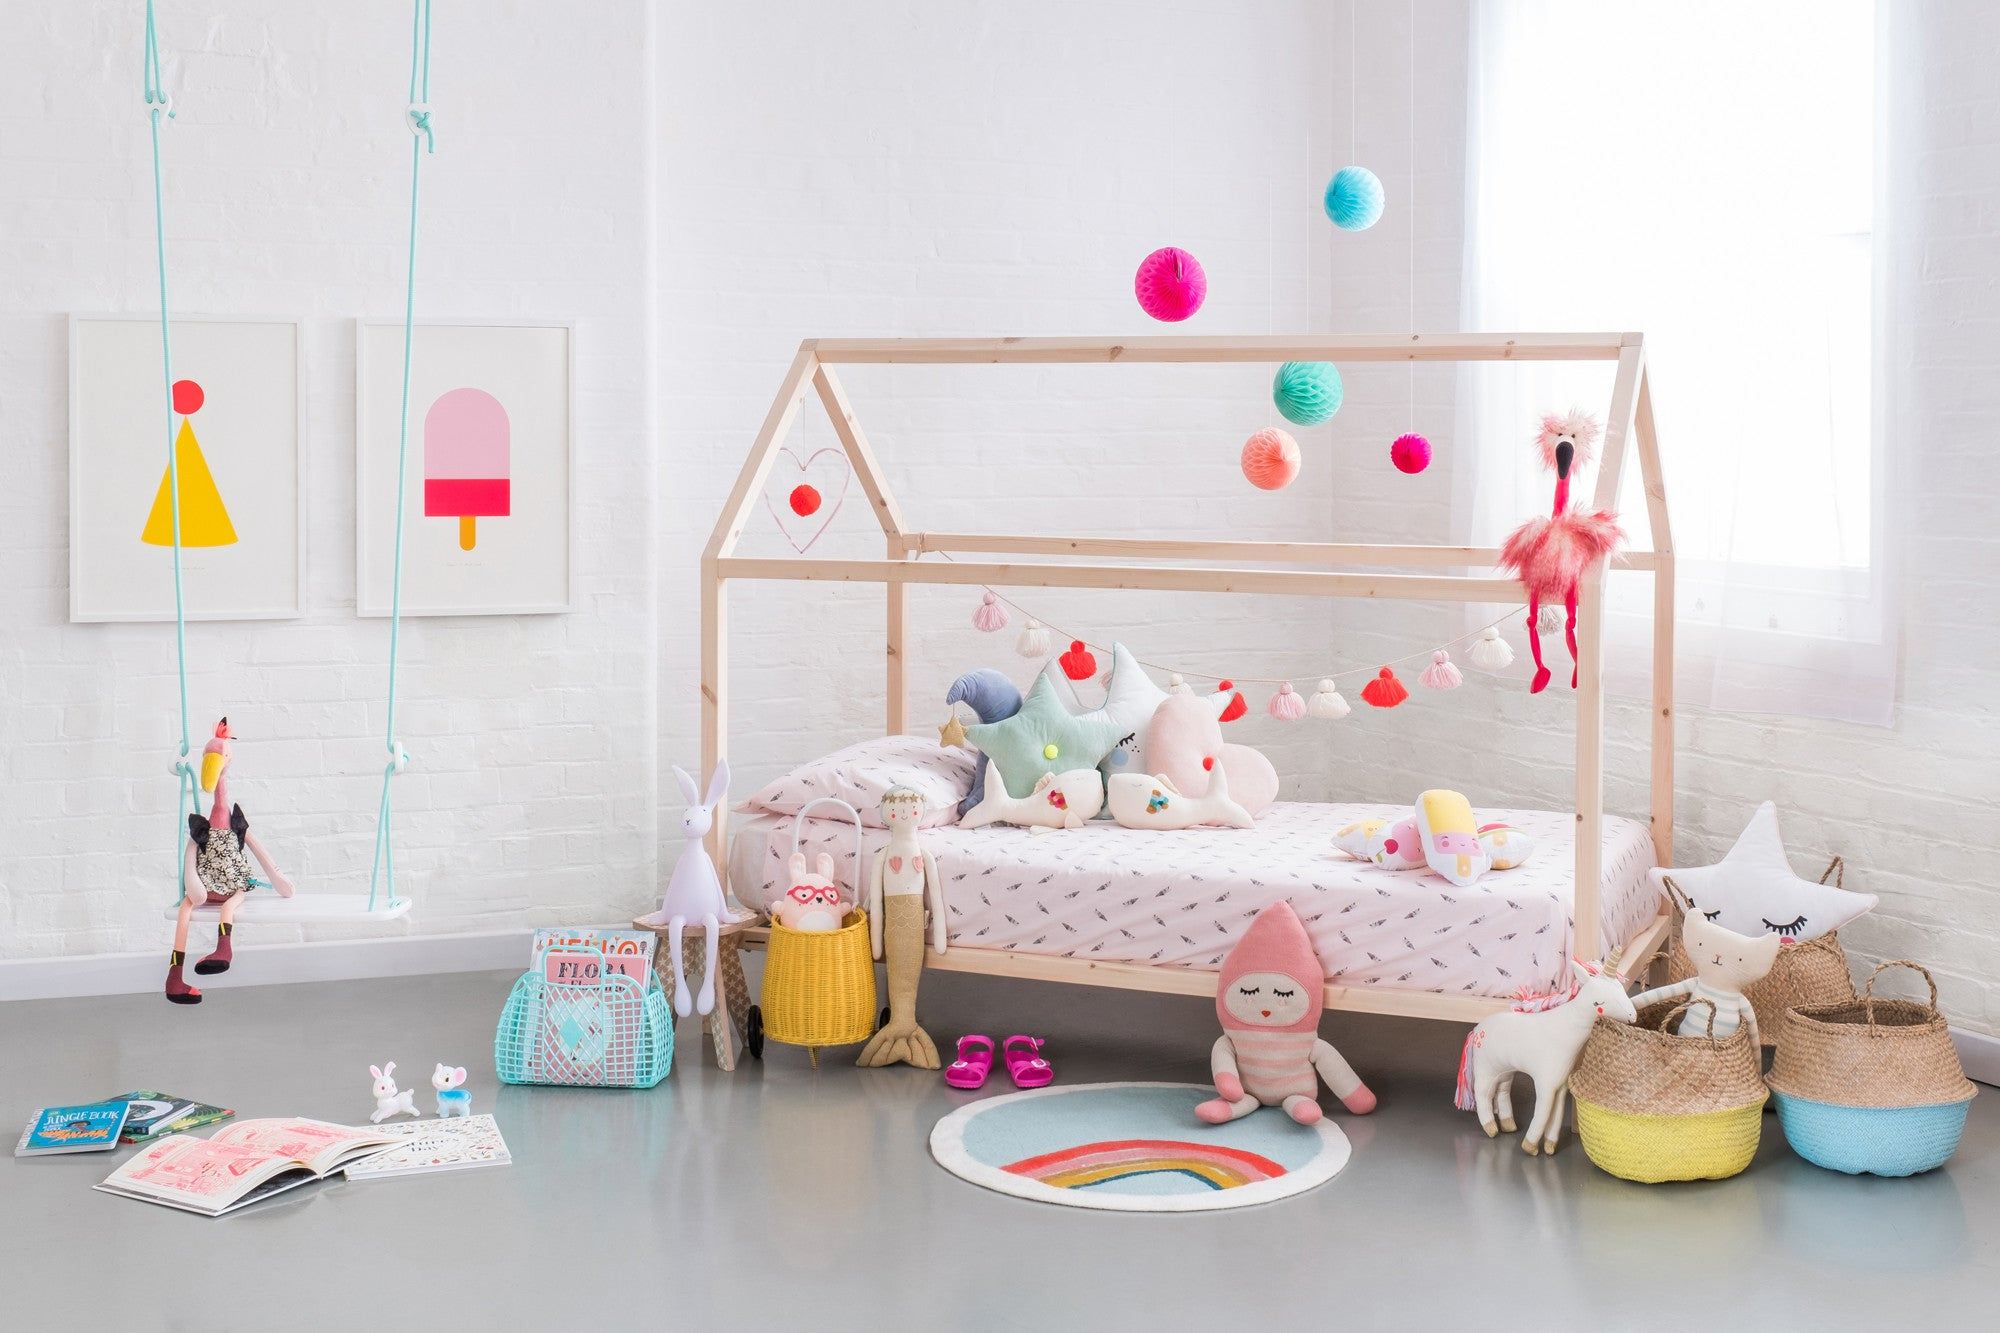 A Mermaid's Tale, children's bedroom styled by Bobby Rabbit.